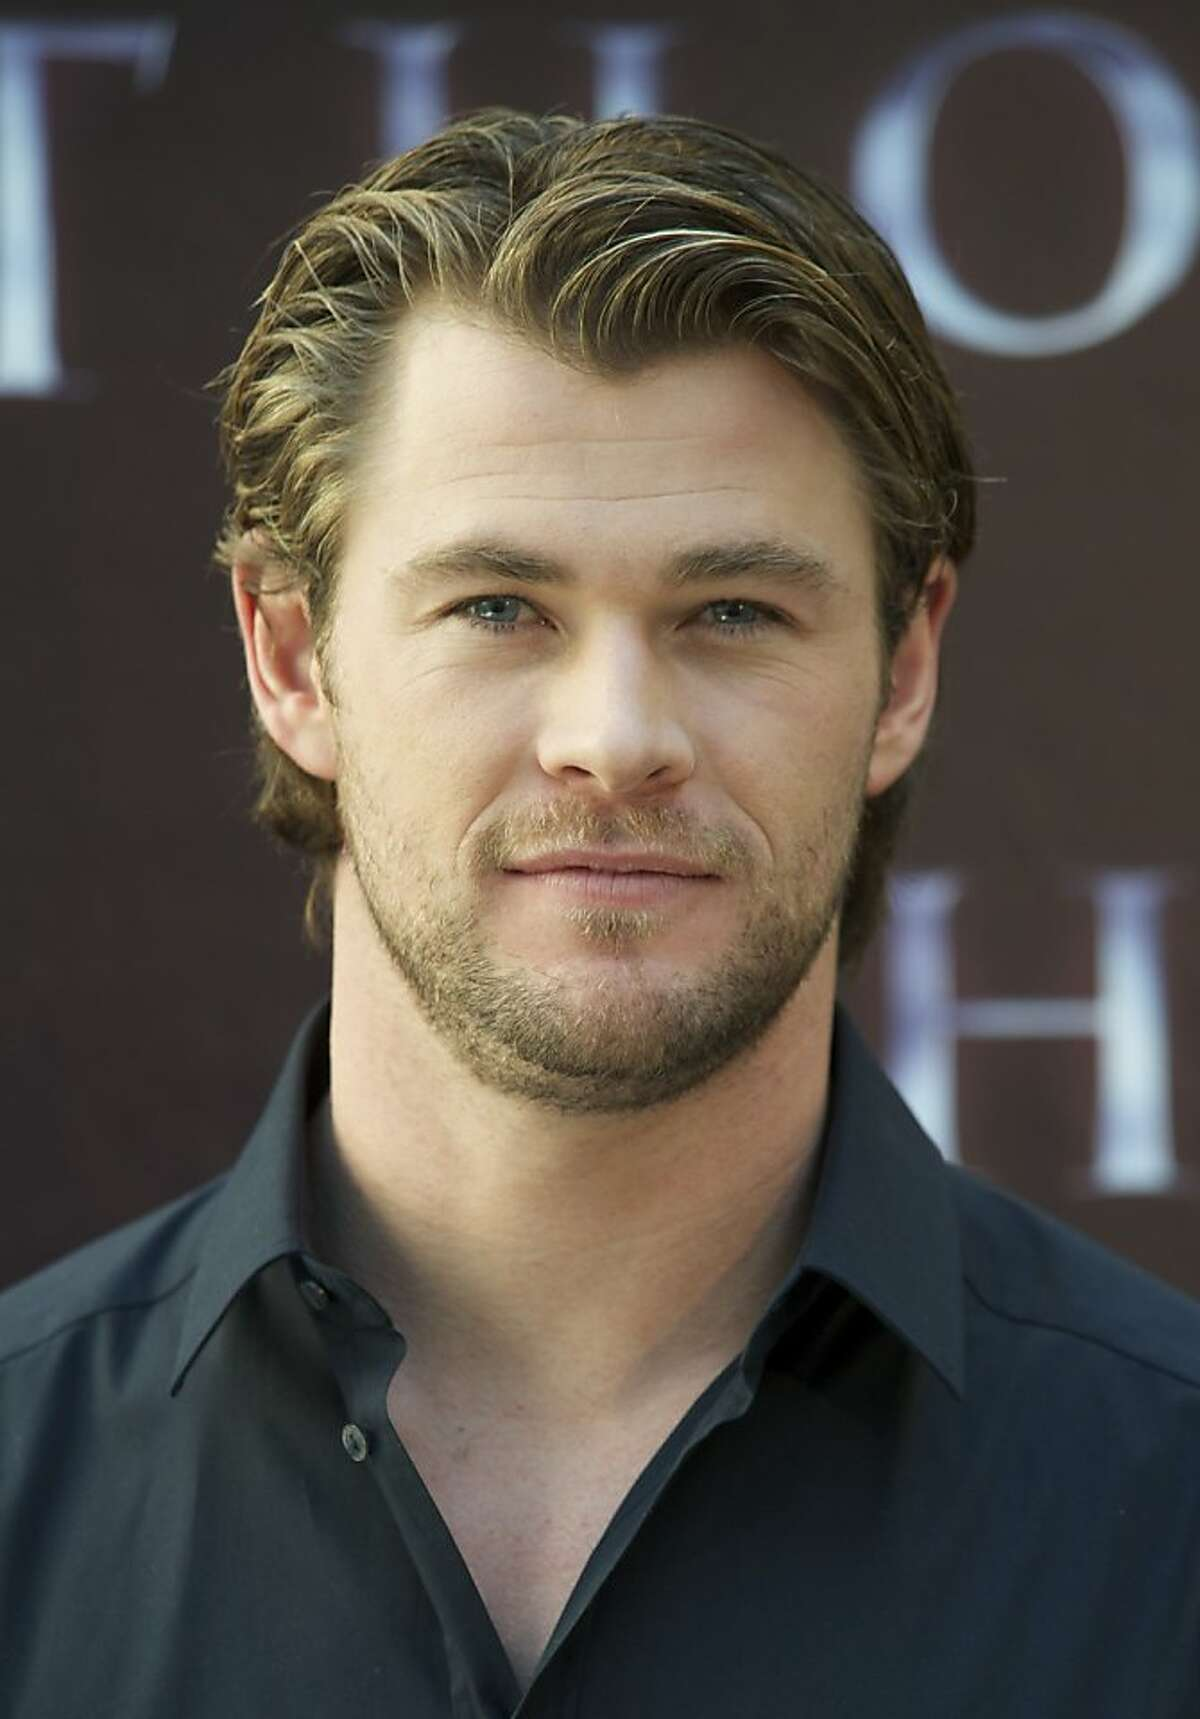 MADRID, SPAIN - APRIL 14: Actor Chris Hemsworth attends